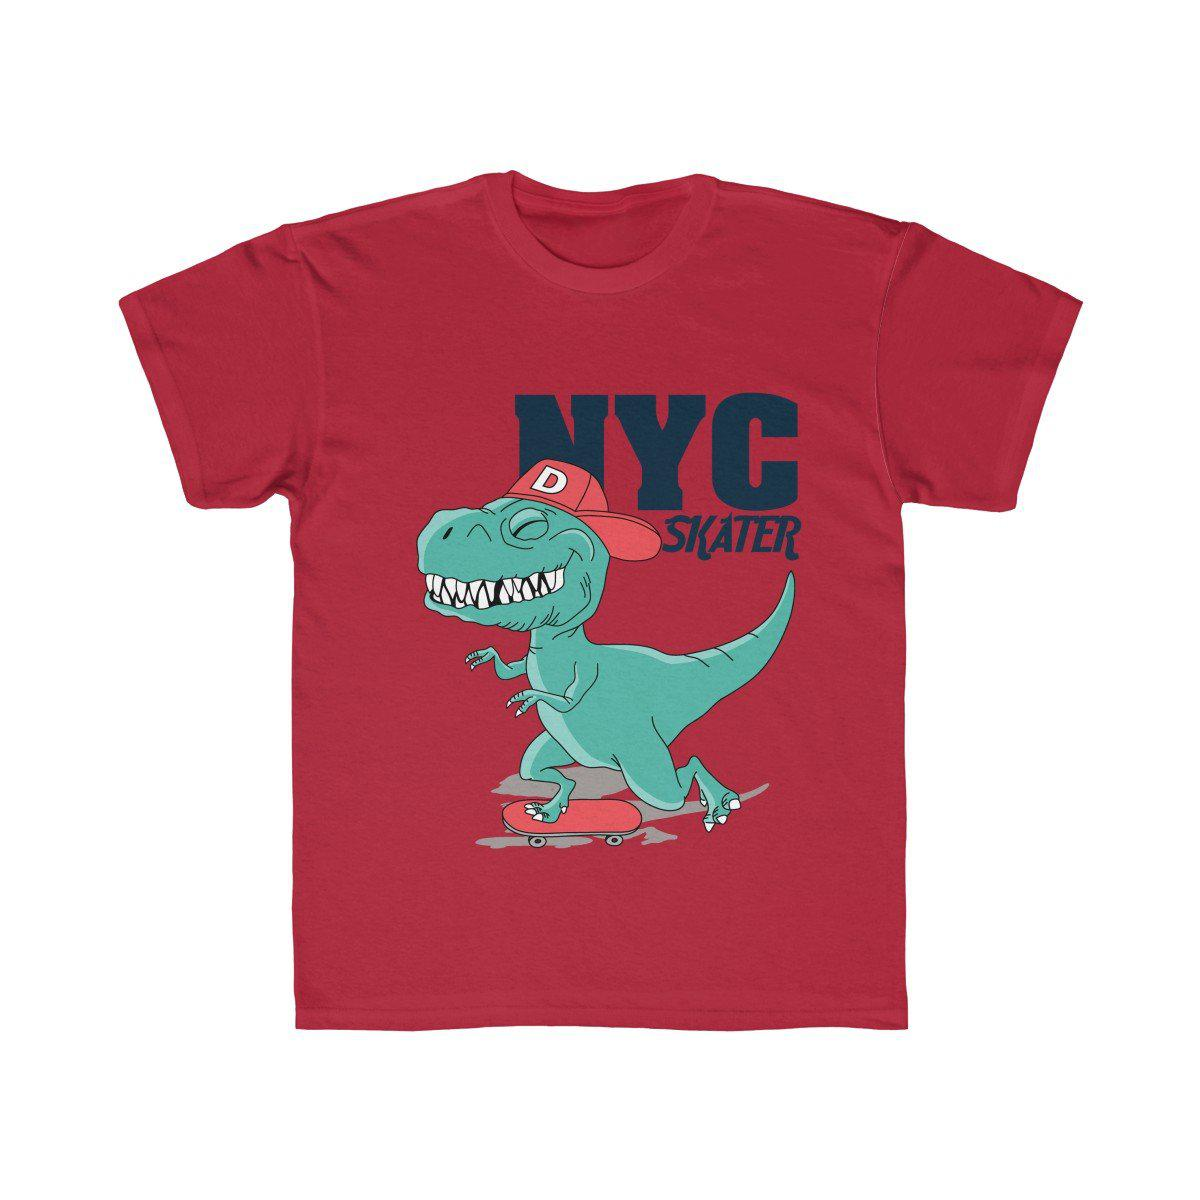 Dinosaur Shirt For Kids